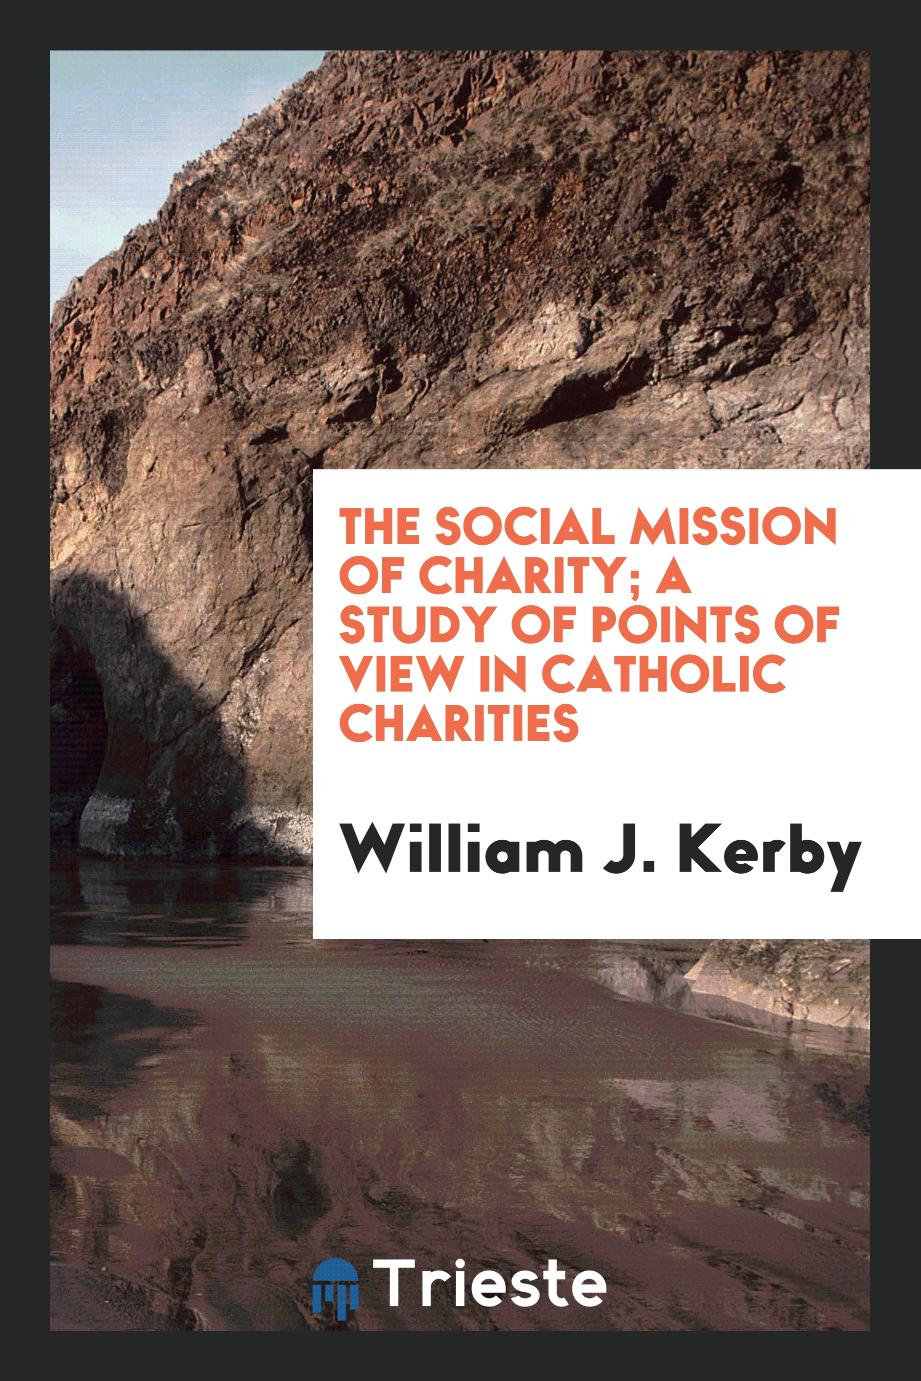 The Social Mission of Charity; A Study of Points of View in Catholic Charities